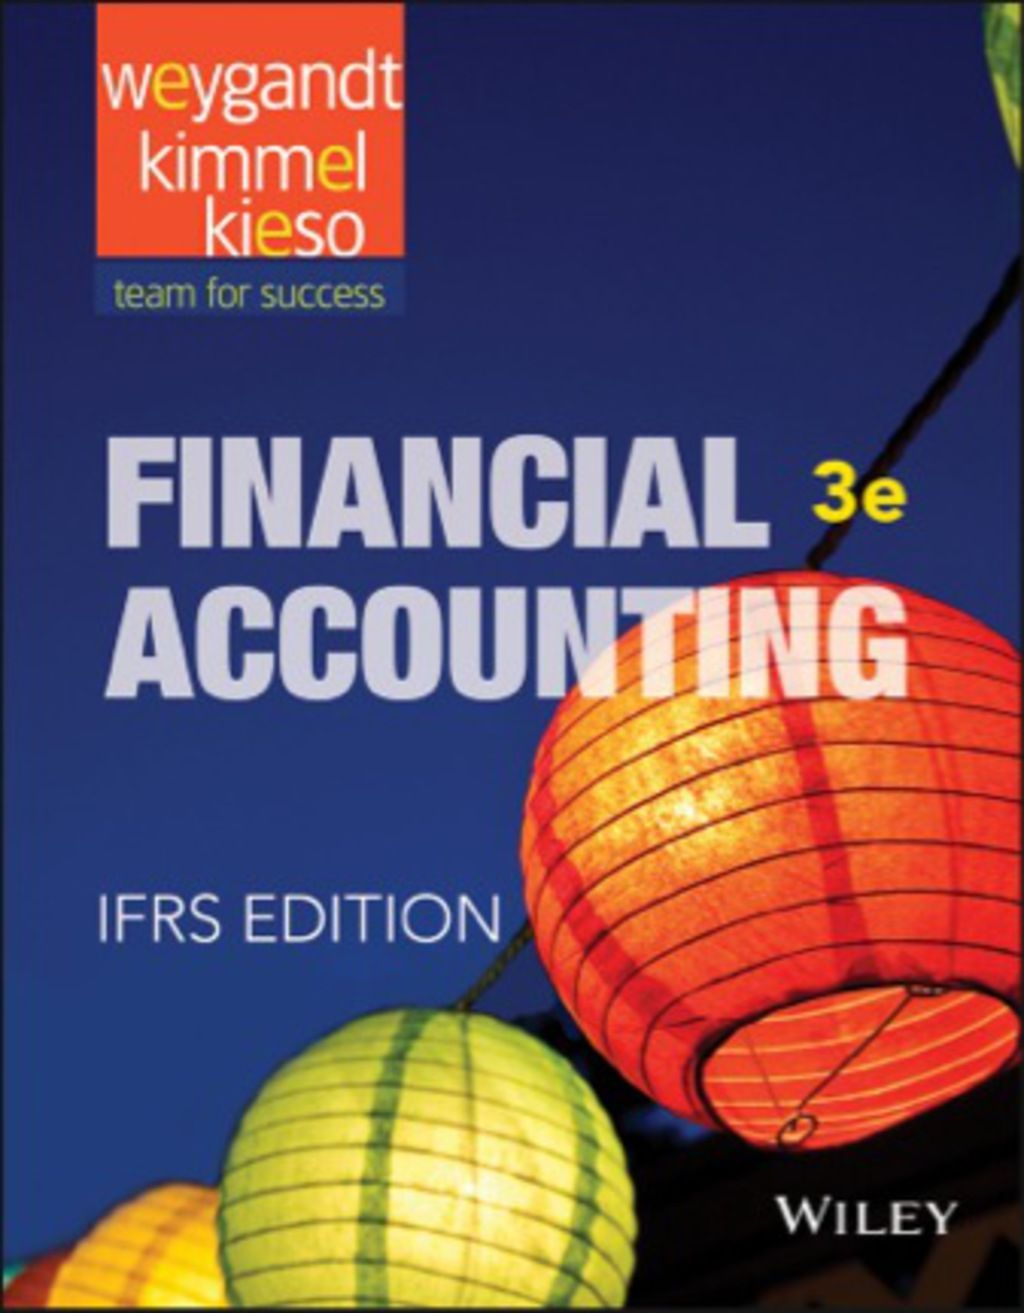 Financial Accounting Ifrs Ebook Rental In 2021 Financial Accounting Accounting Bank Financial